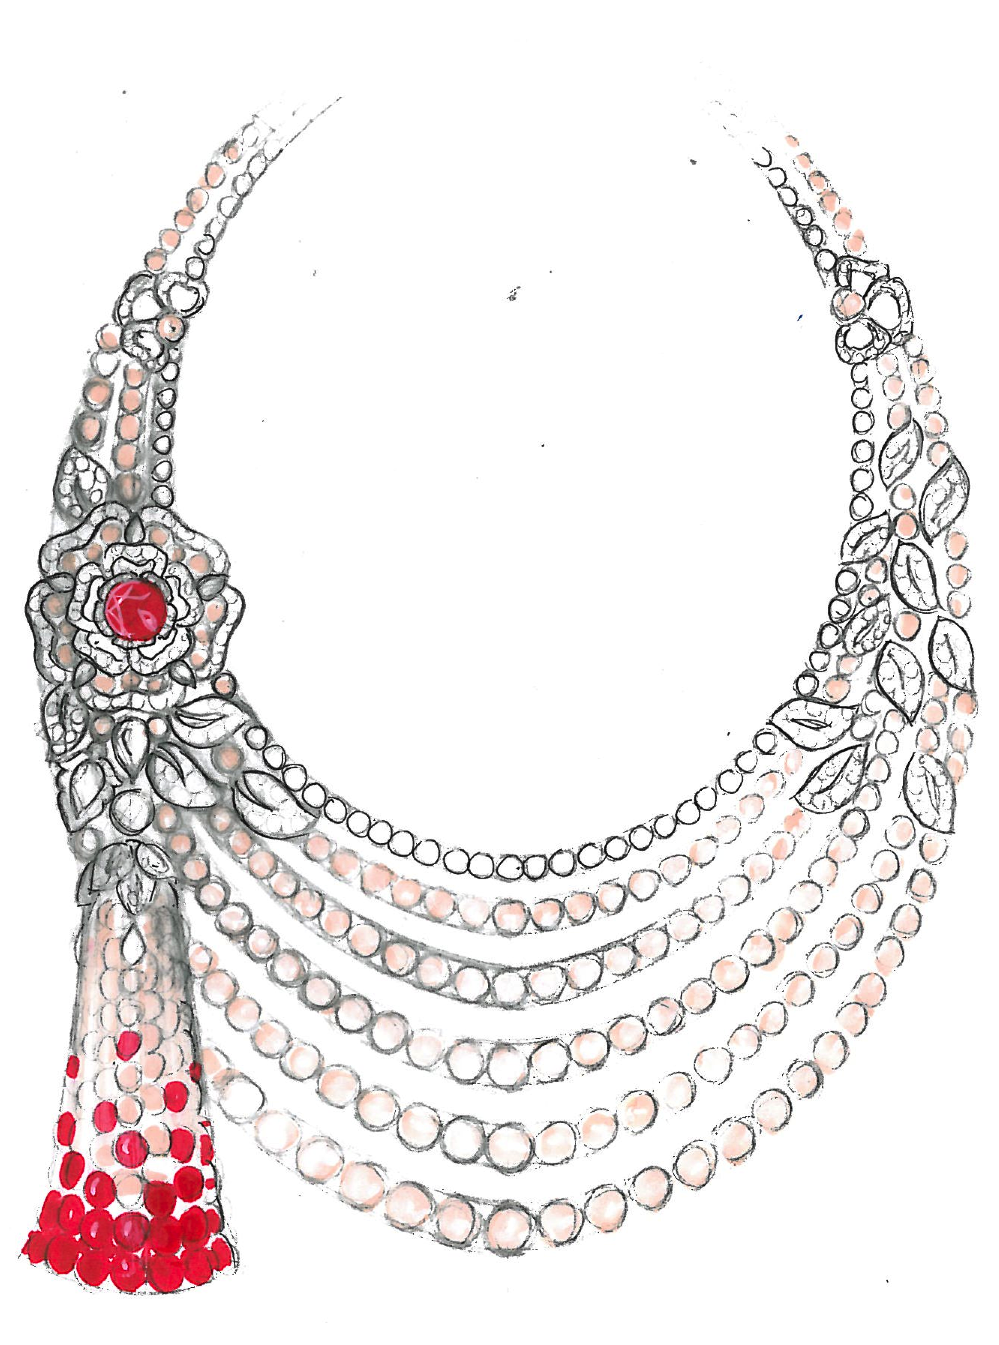 Necklace pearl sketch photo